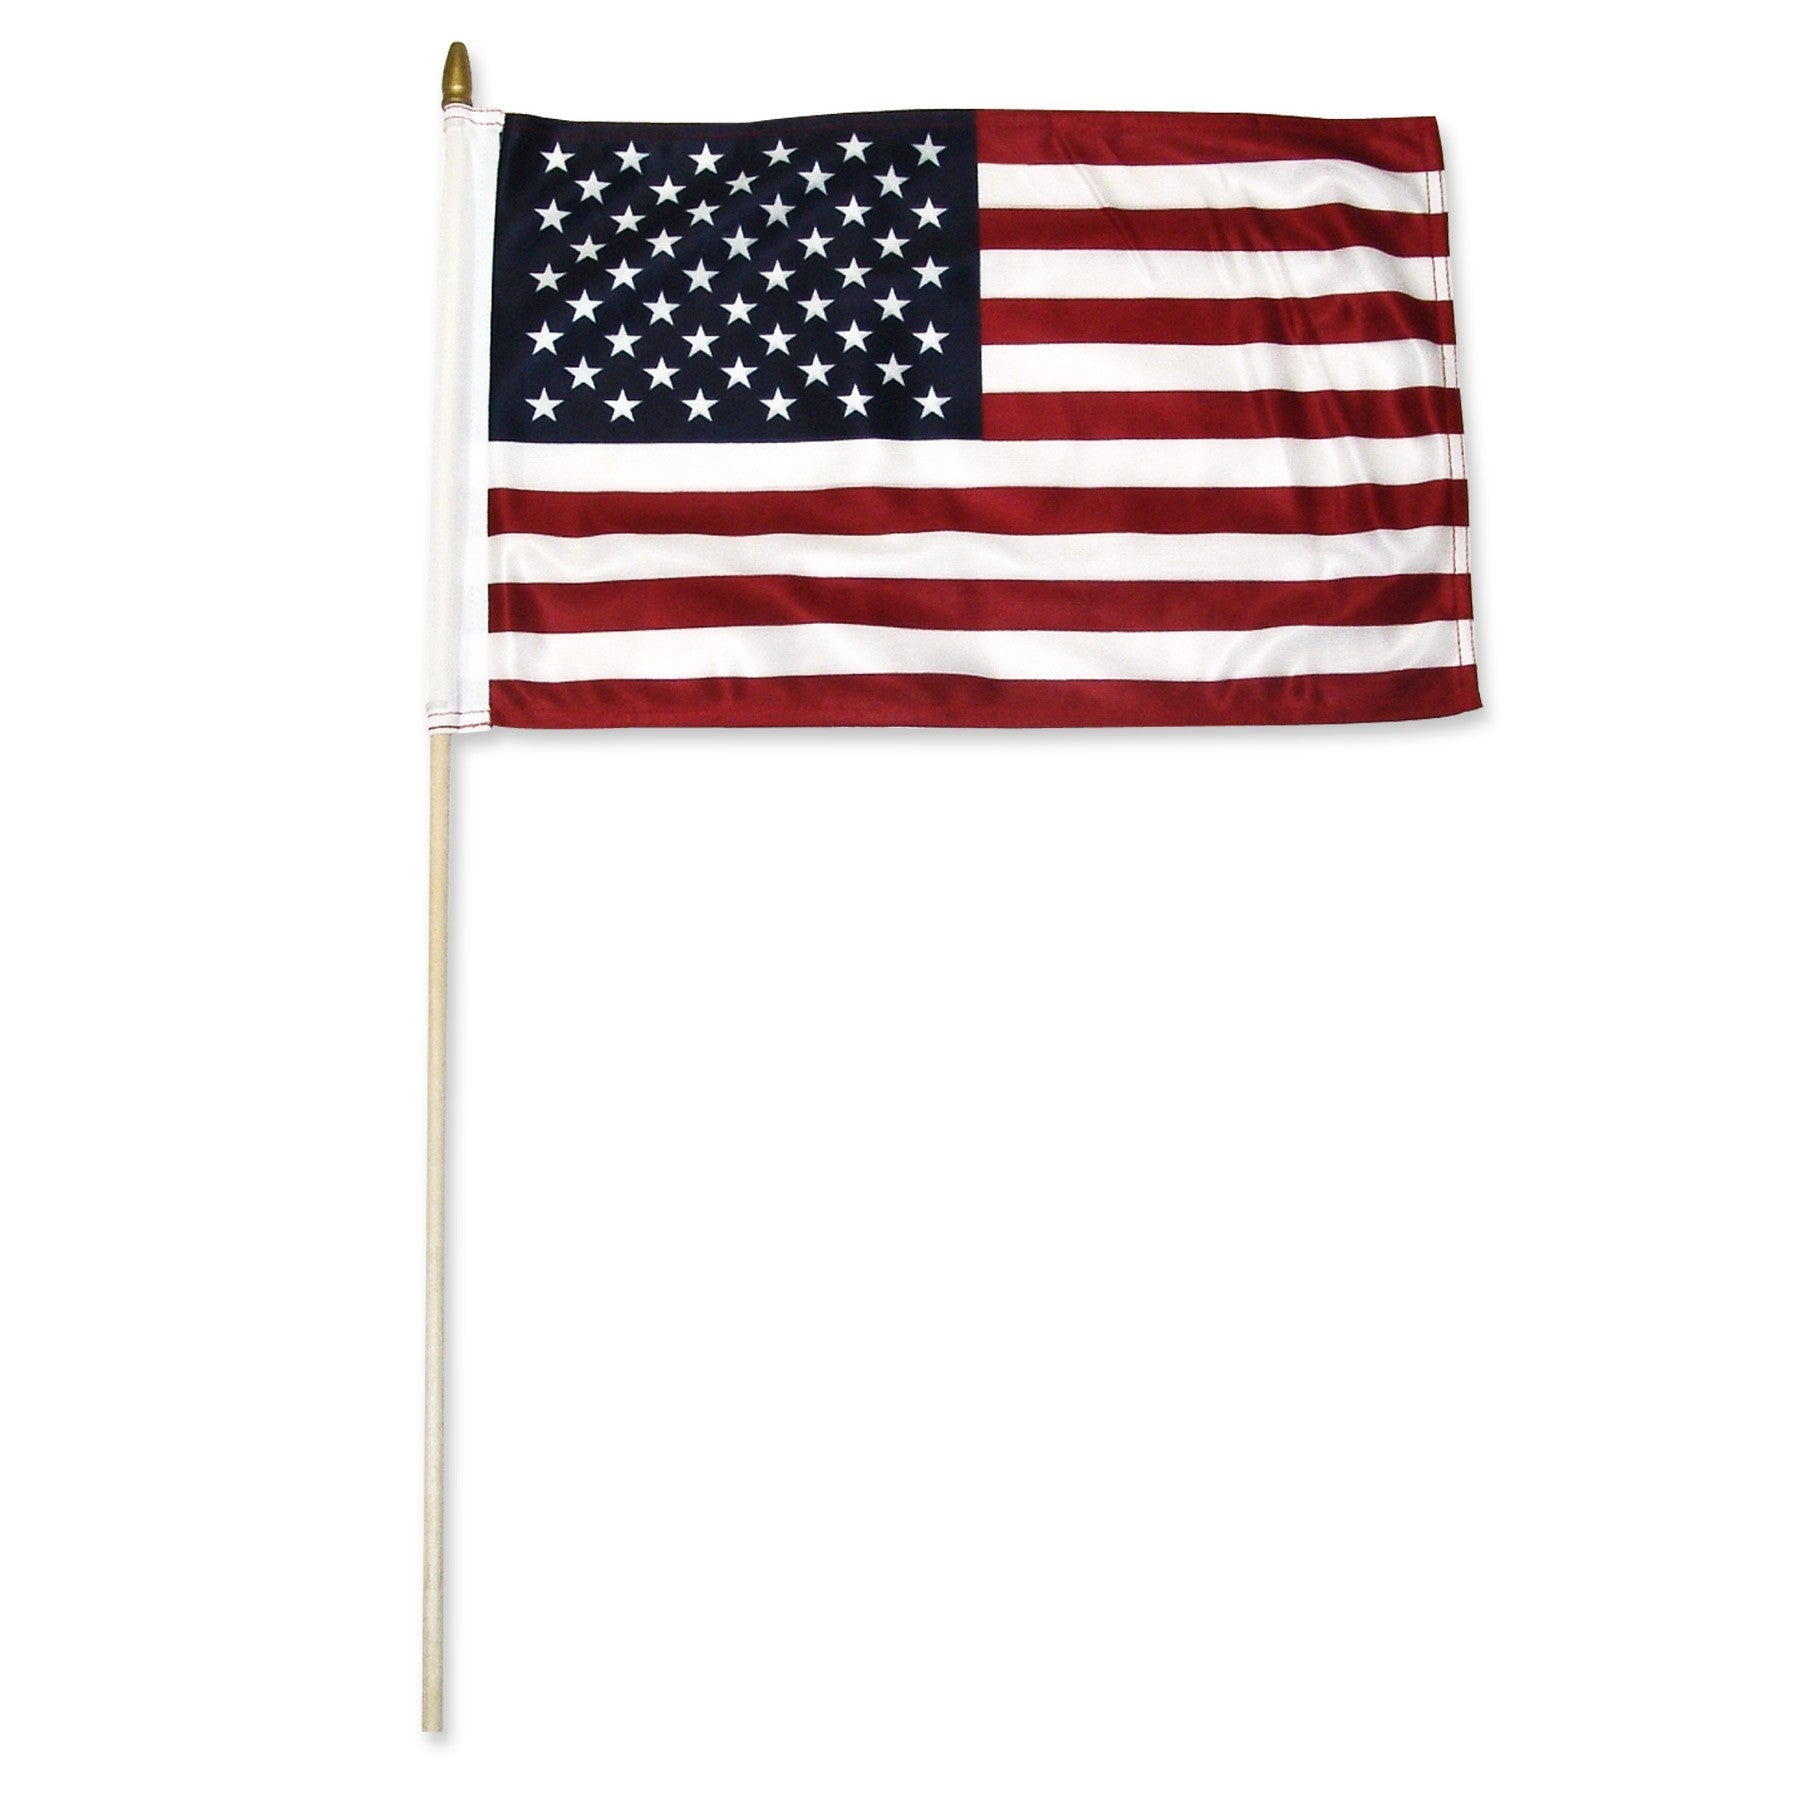 US Stick Flag 12x18 flags for sale